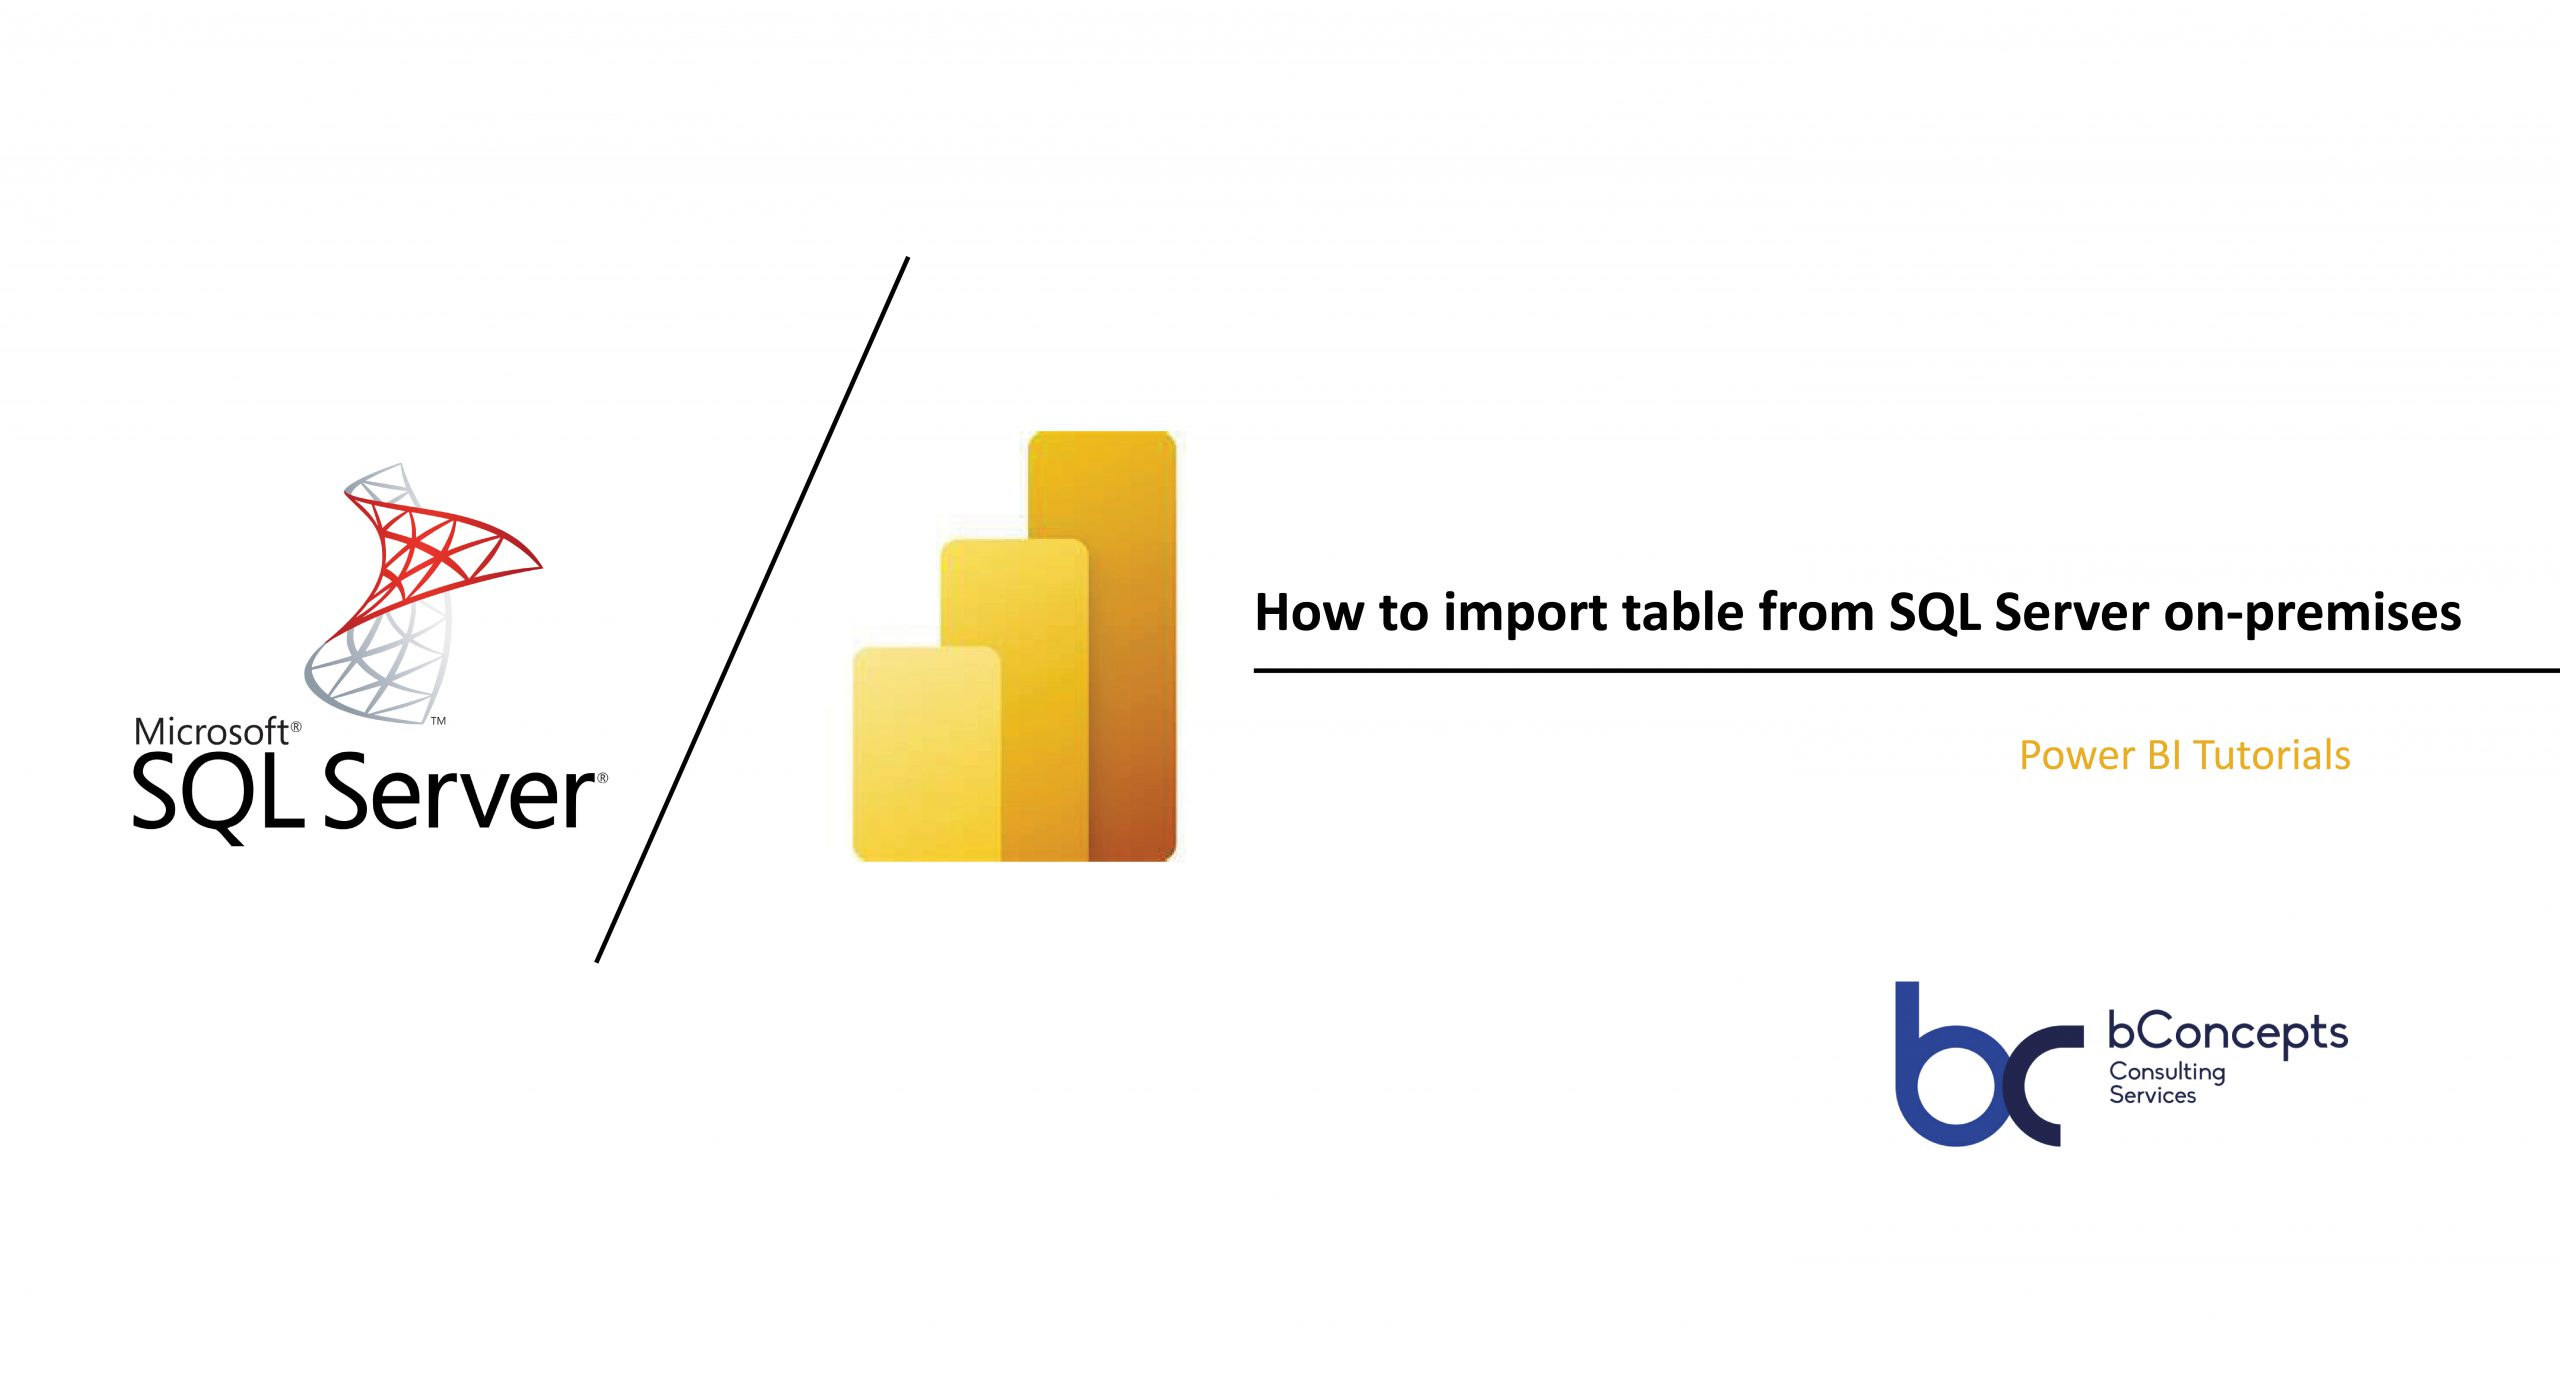 Import from SQLServer to Power BI